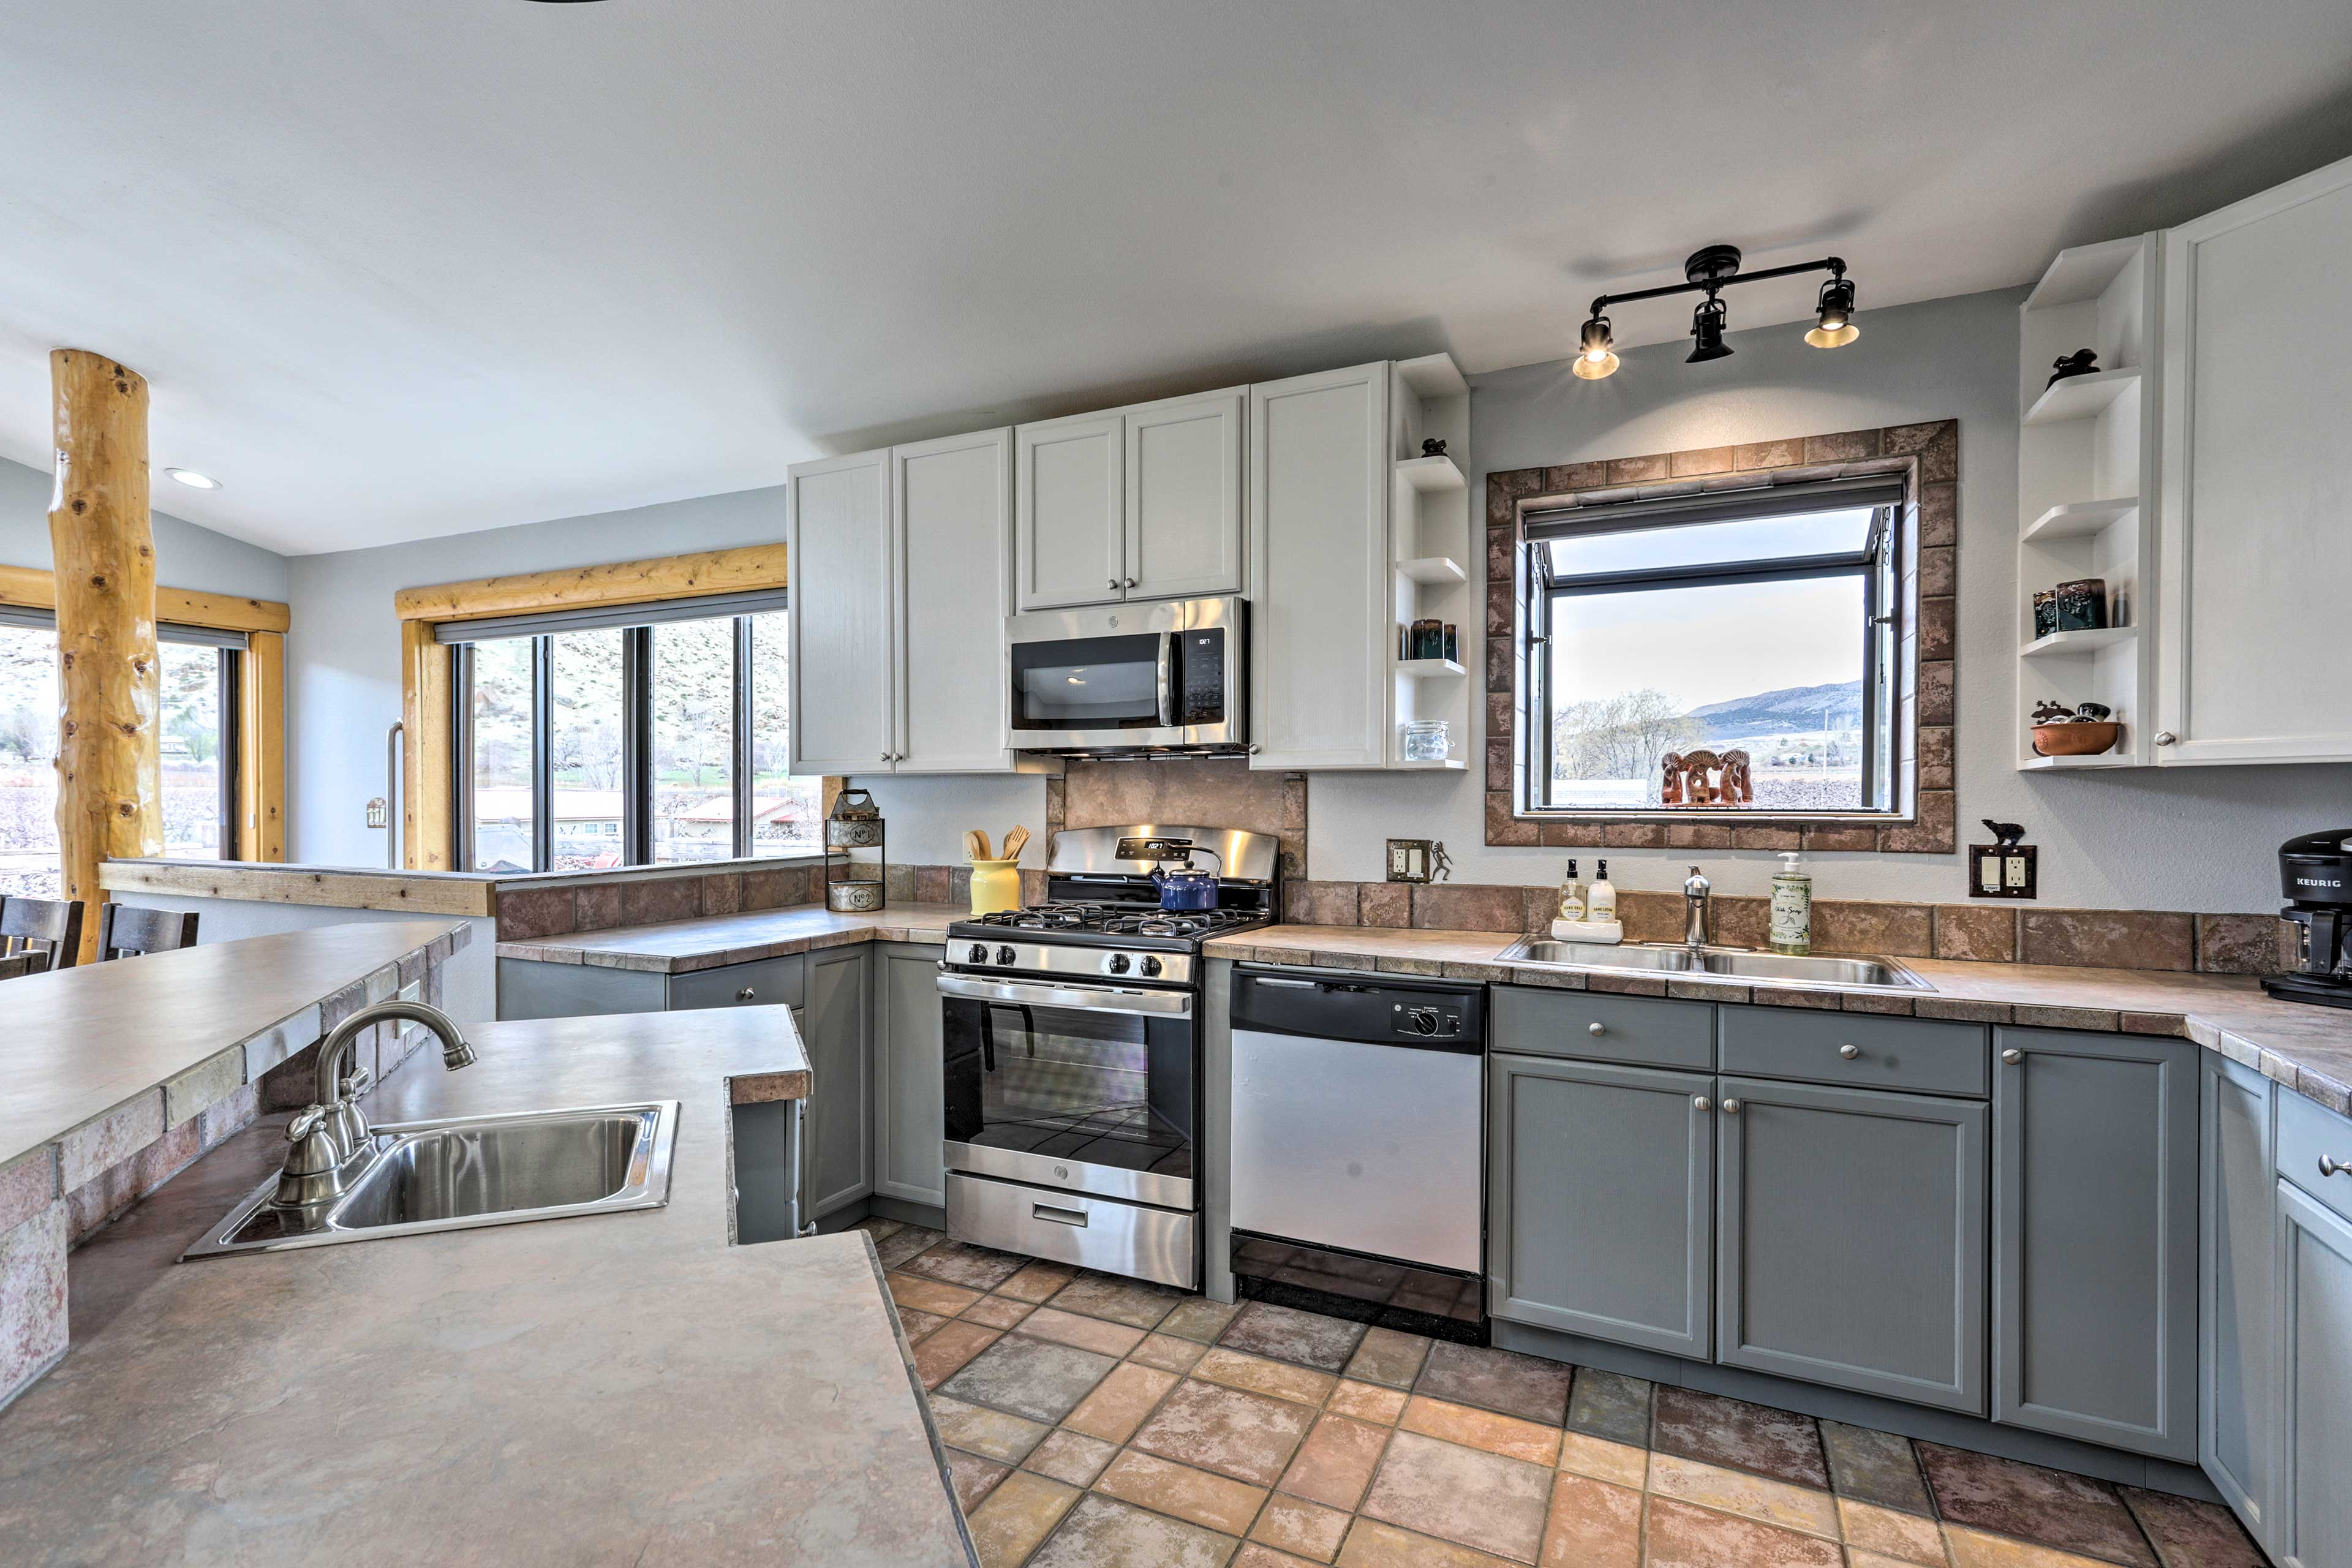 Cook all your favorite recipes in the fully equipped kitchen.